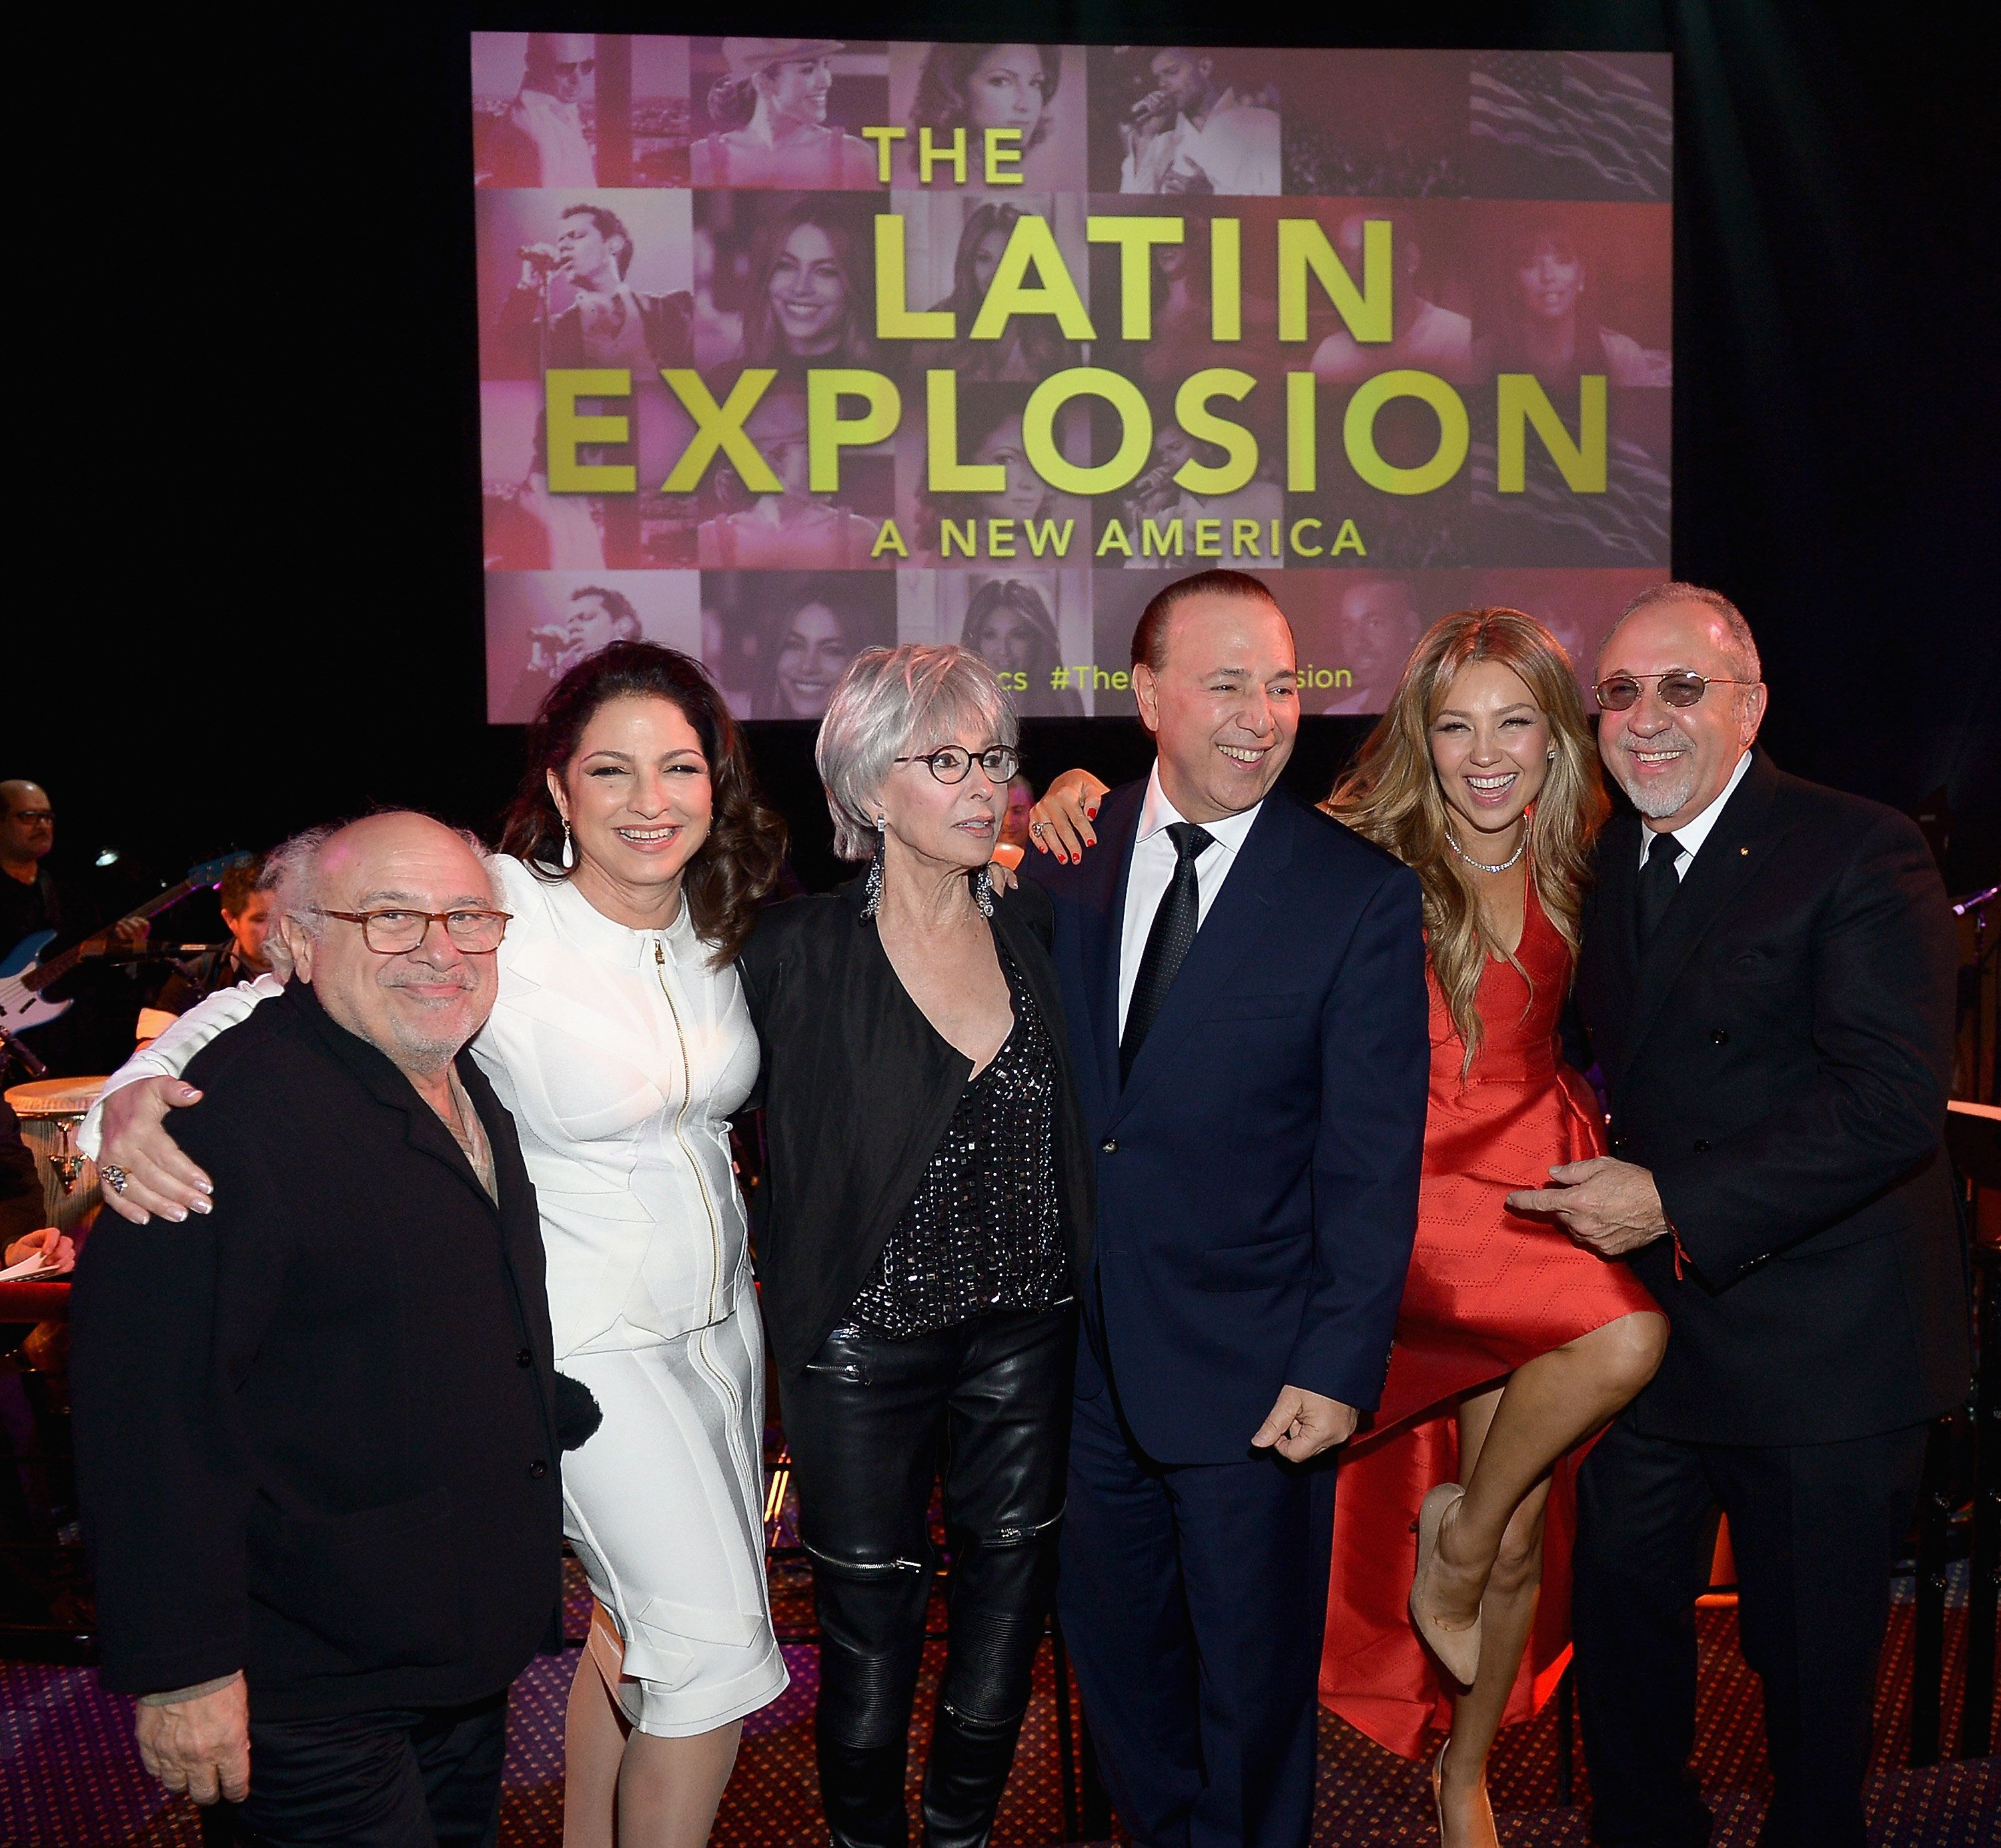 NEW YORK, NY - NOVEMBER 10:  Danny Devito, Gloria Estefan, Rita Moreno, Tommy Mottola,Thalia and Emilio Estefan attends the 'The Latin Explosion: A New America,' Premiere Screening  on November 10, 2015 in New York City.  (Photo by Gustavo Caballero/Getty Images for HBO Latino)